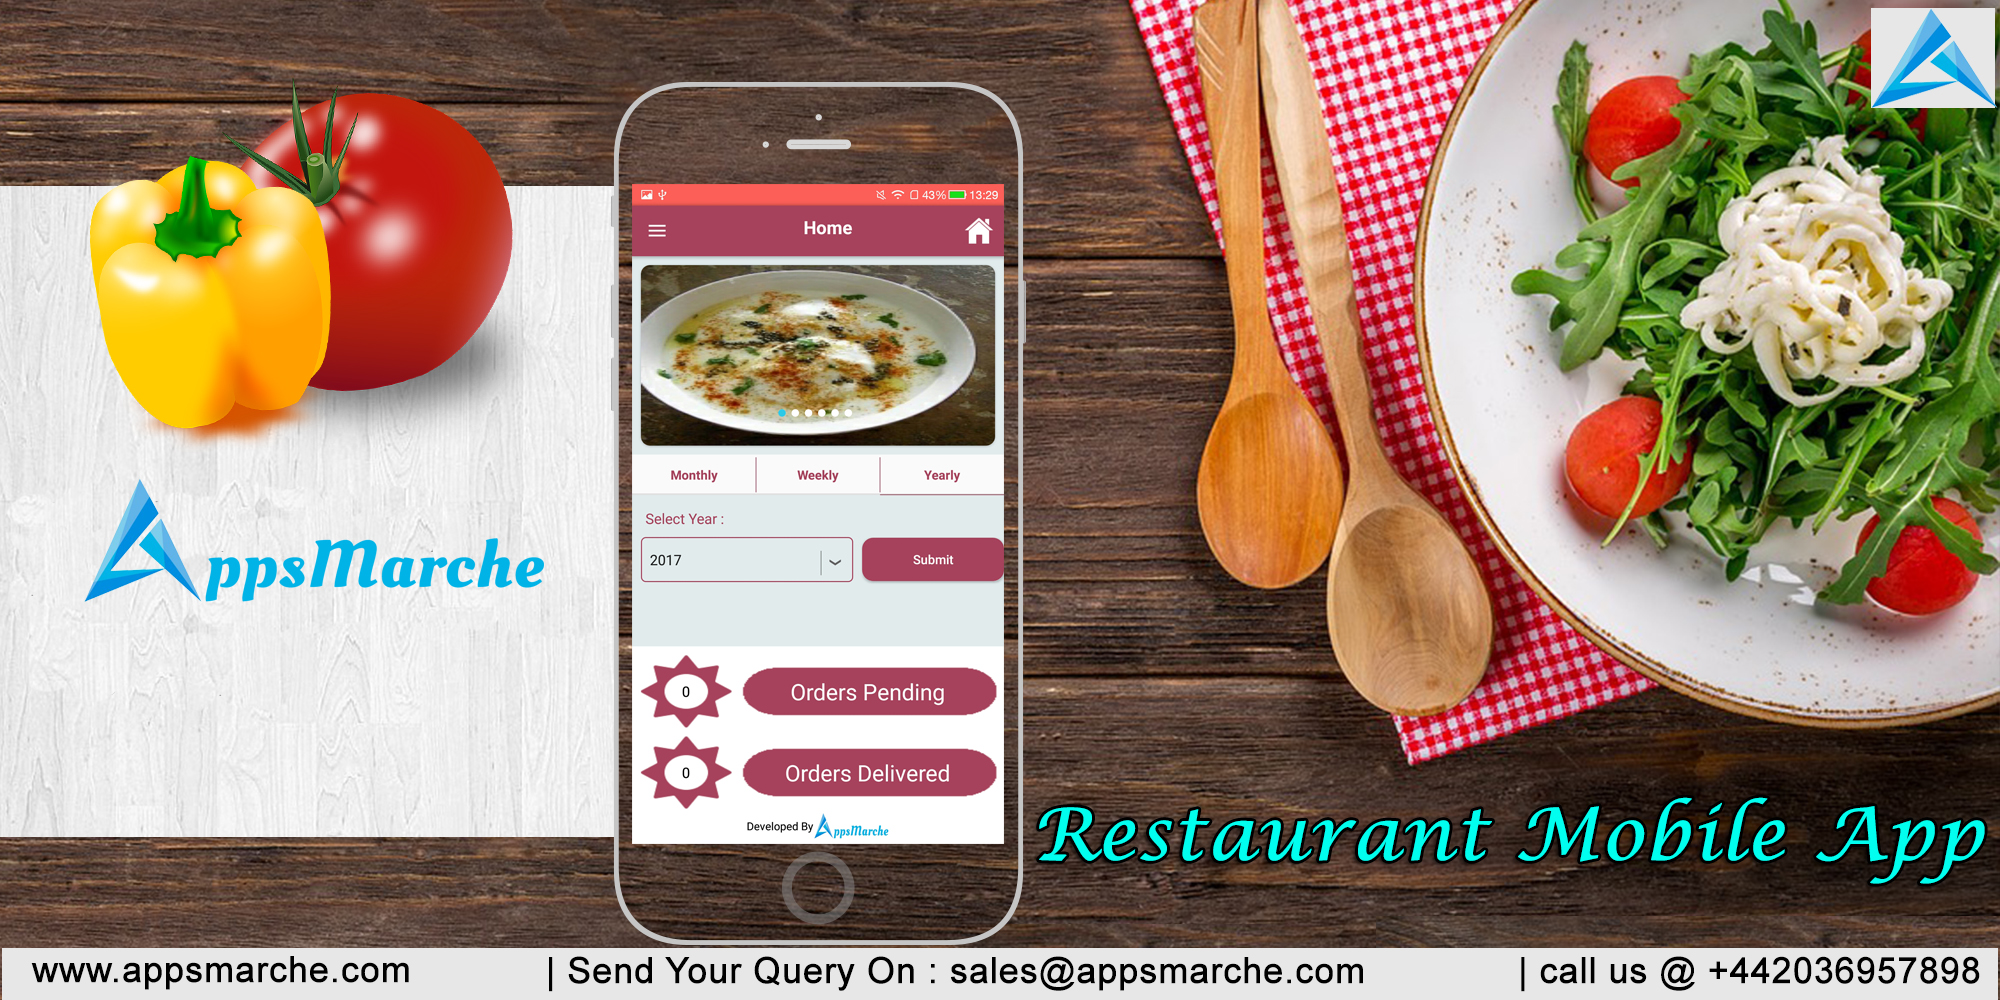 best restaurant mobile app to uplift your restaurant, restaurant mobile app, restaurant management app, restaurant management mobile app, online delivery, restaurant business mobile app, appsmarche, app builder, best mobile app builder